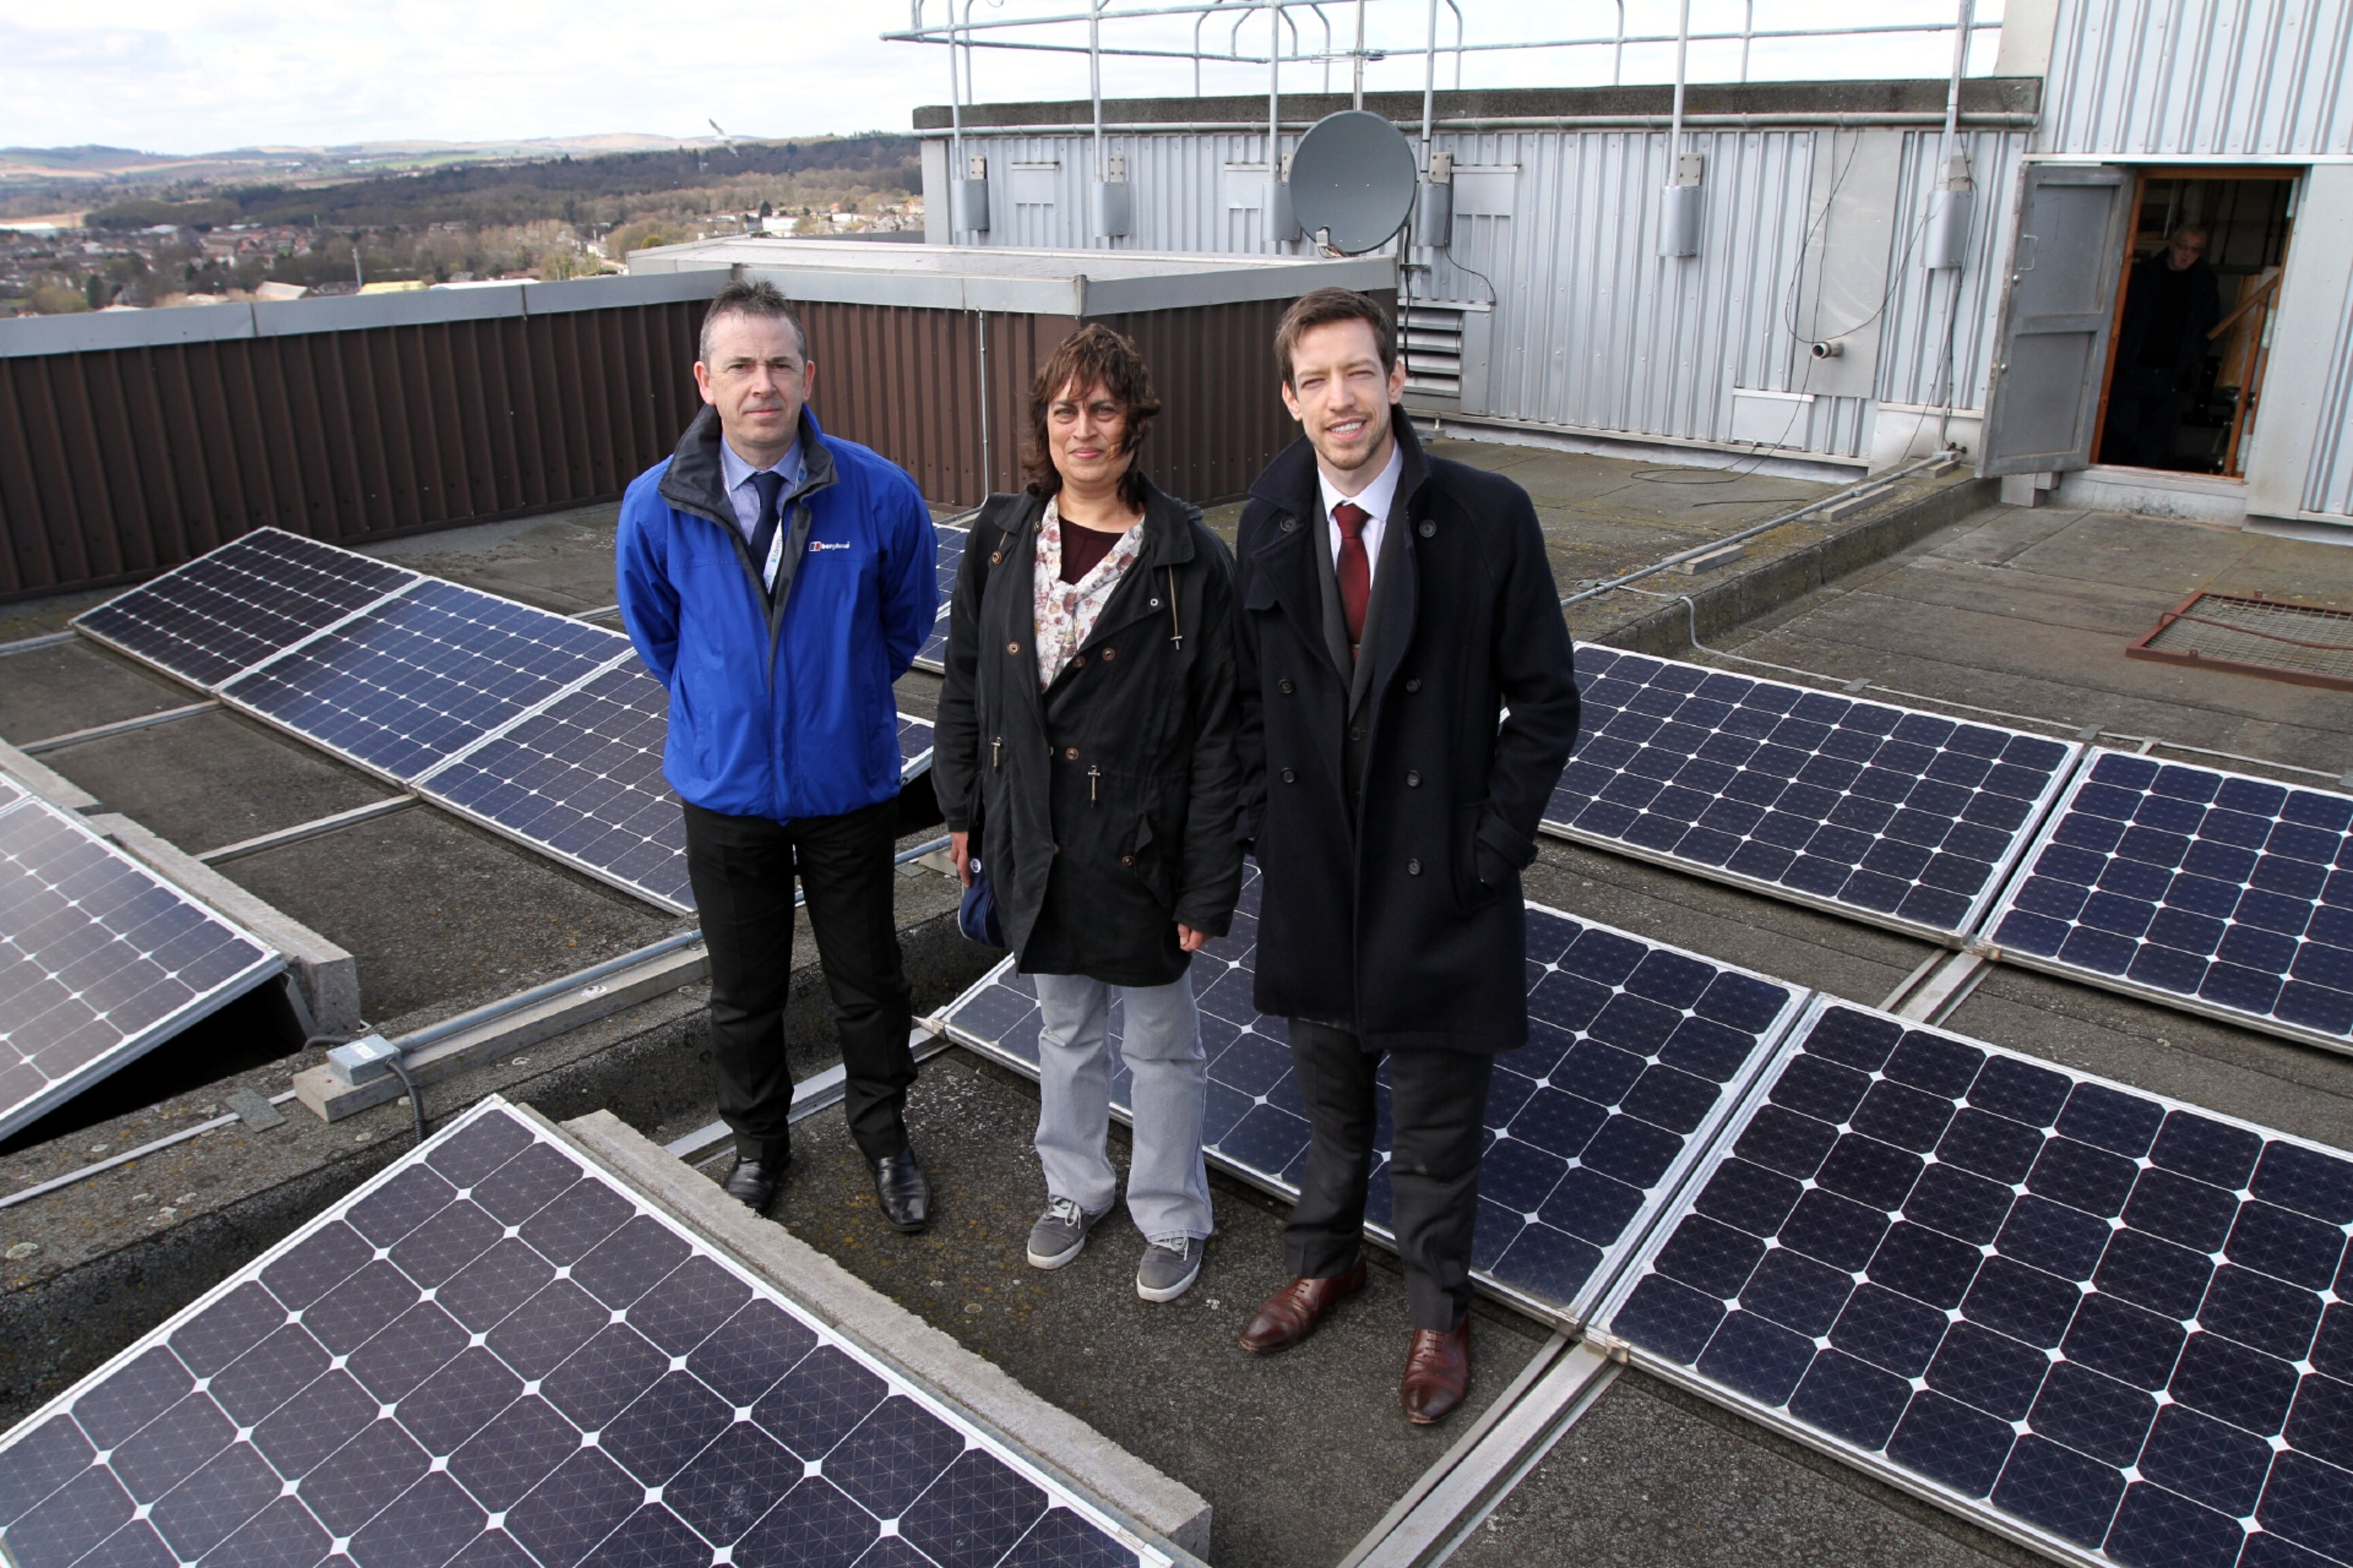 Councillor John Alexander, right, with Jenny Kermally of Friends of the Earth, and Douglas Fraser, estate services coordinator